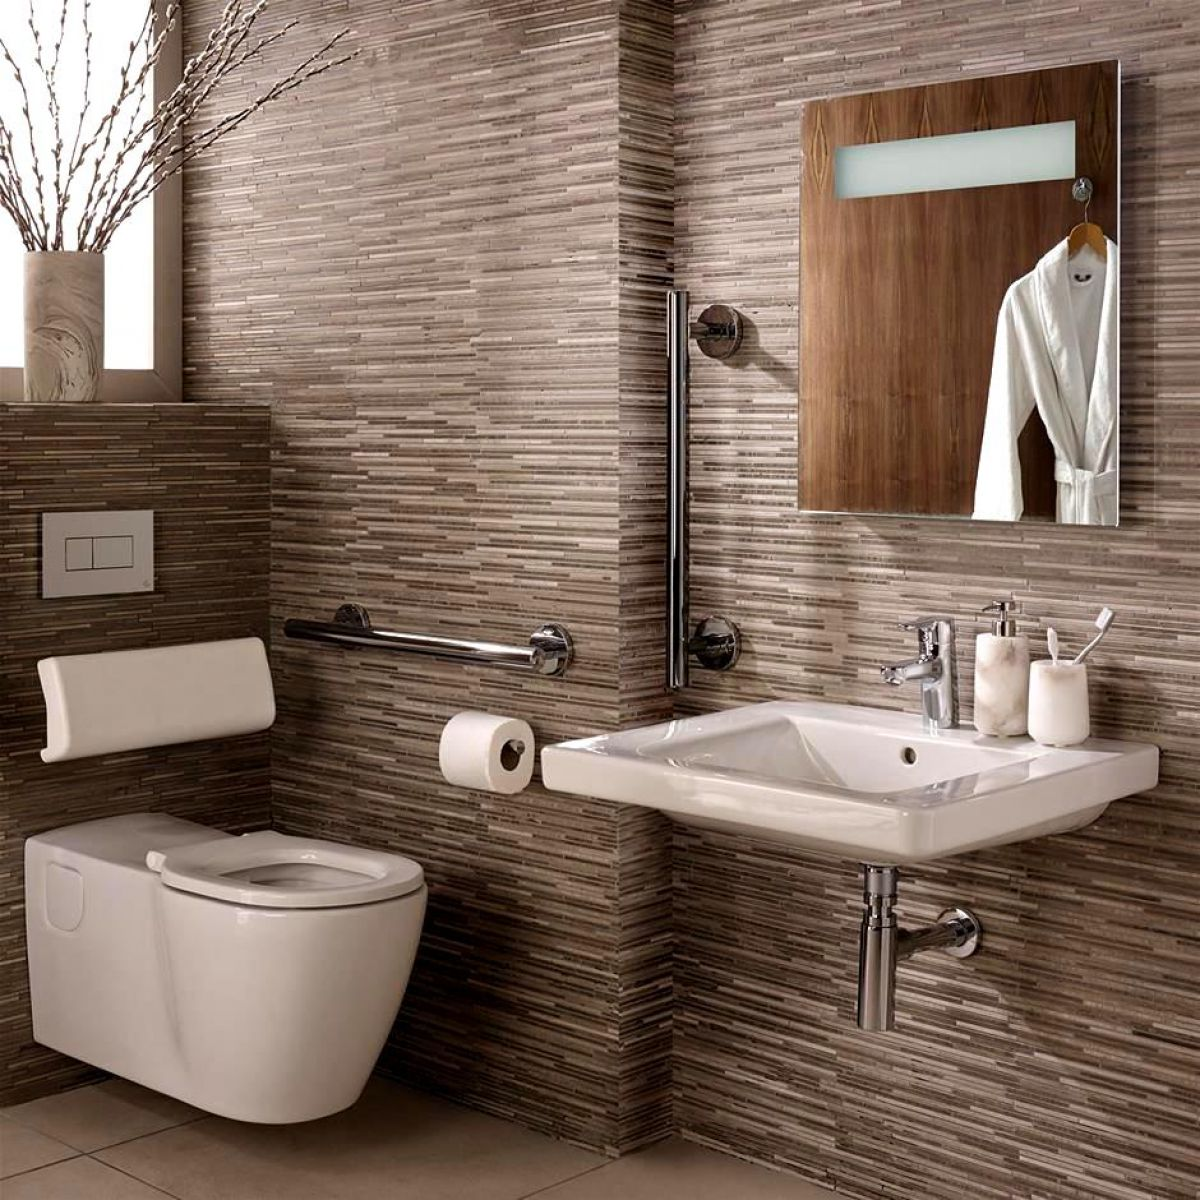 ideal standard concept freedom ensuite bathroom package with